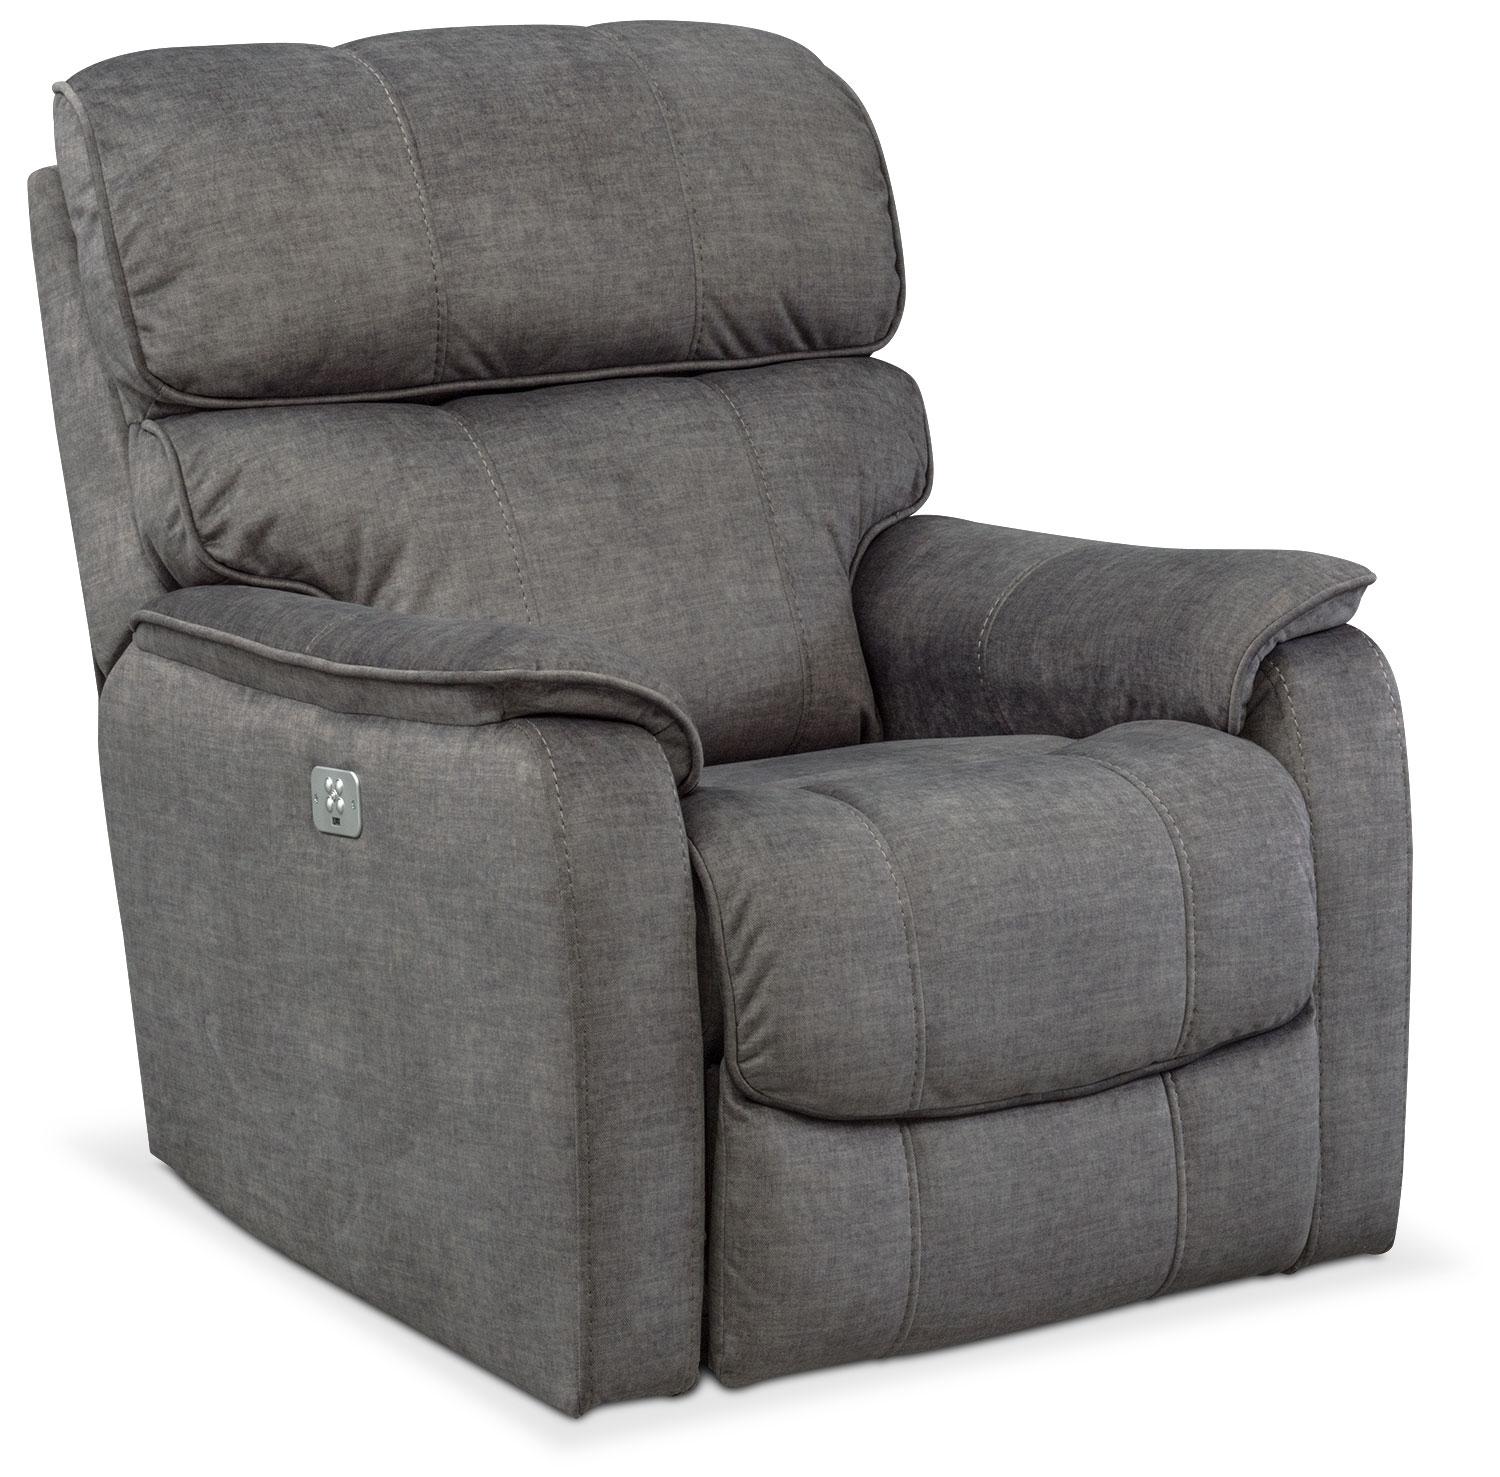 Recliners & Rockers | Value City Furniture | Value City Furniture Intended For Denali Light Grey 6 Piece Reclining Sectionals With 2 Power Headrests (Image 21 of 25)